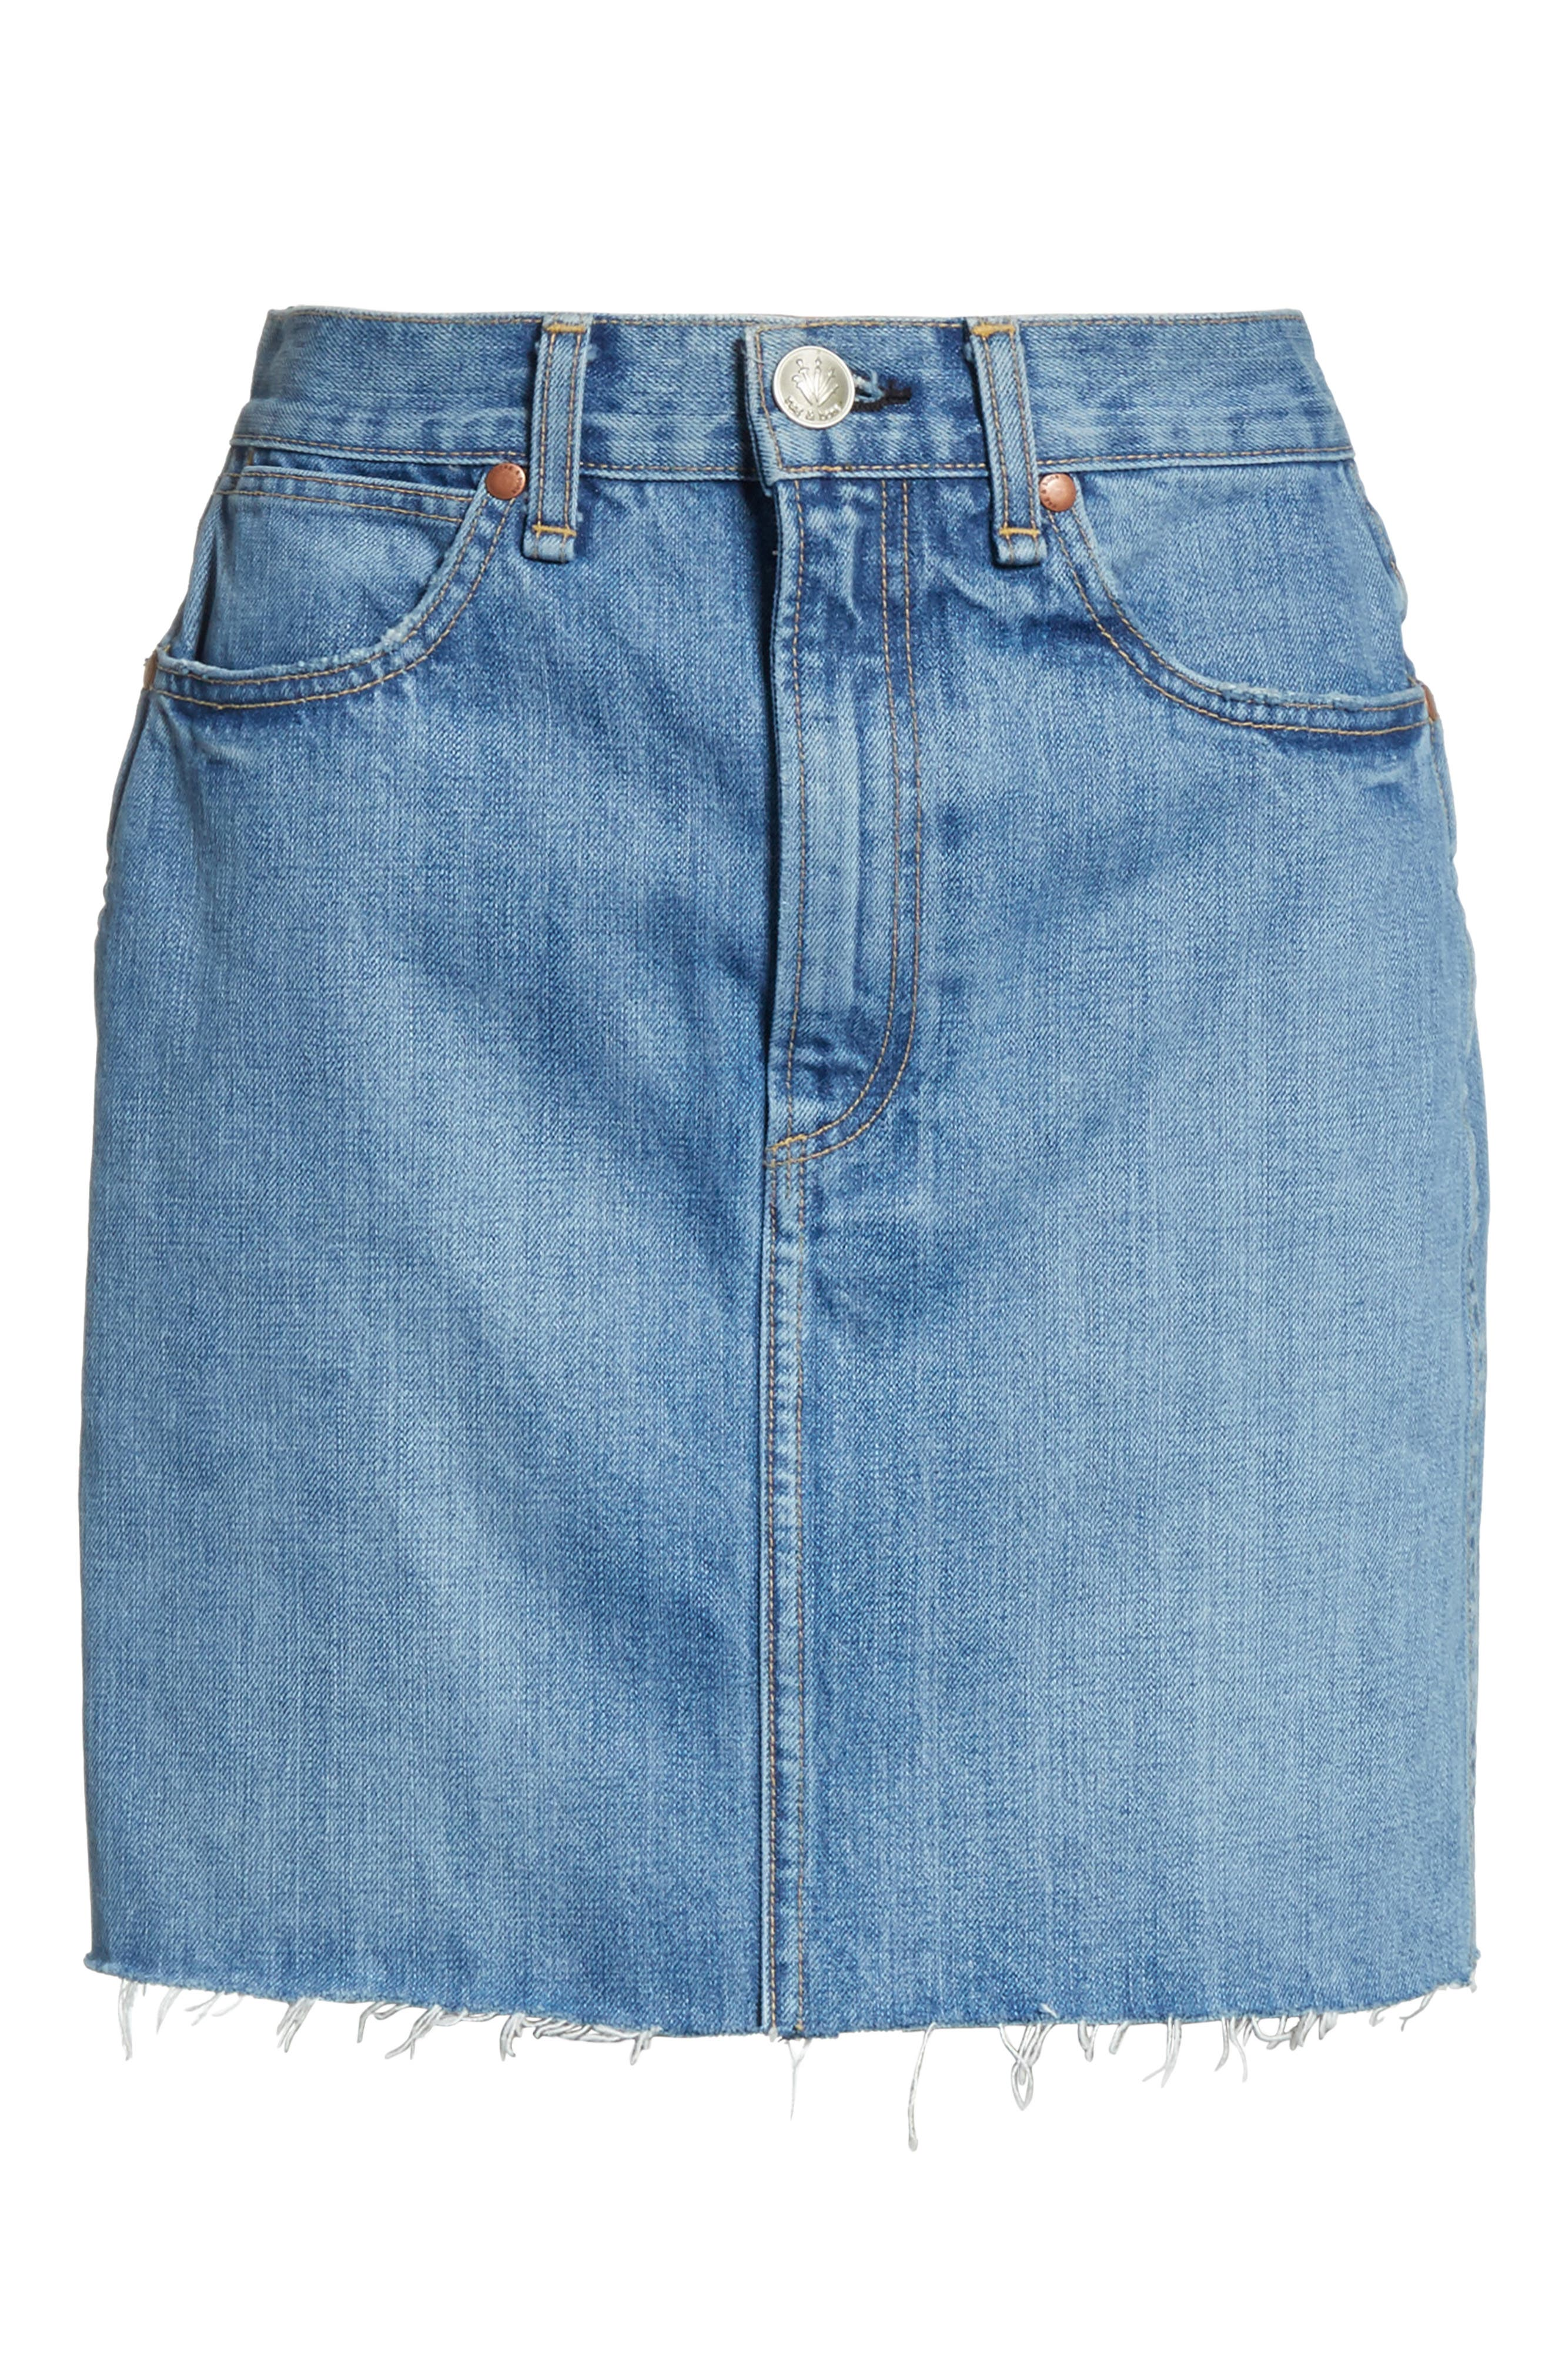 Moss High Waist Denim Miniskirt,                             Alternate thumbnail 6, color,                             420